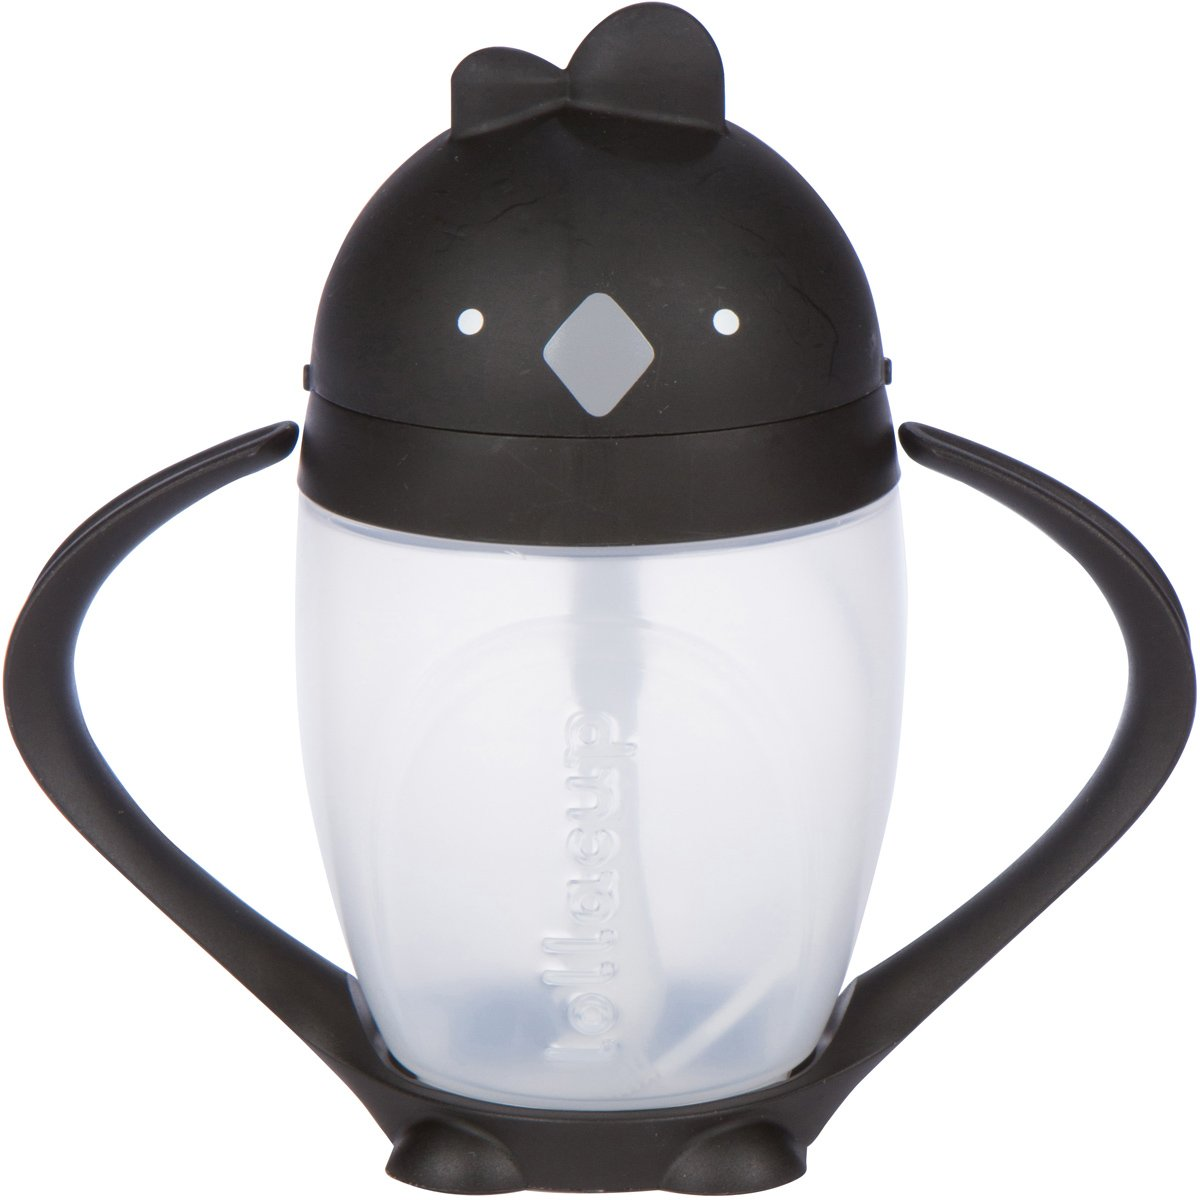 Lollaland Lollacup - Infant/Toddler Sippy Cup with Straw - Black